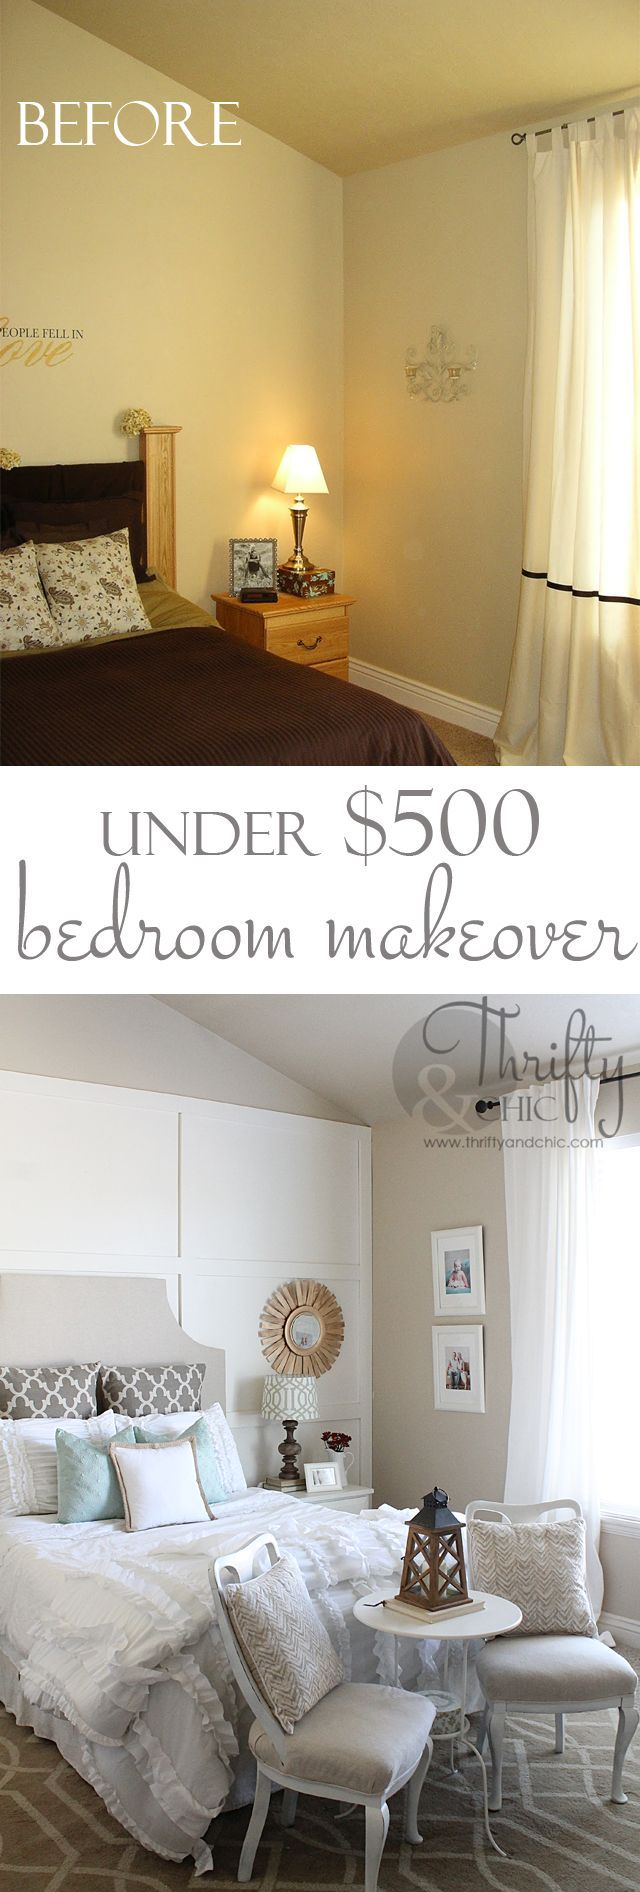 Bathroom Renovation Under $500 square board and batten wall treatment and master bedroom makeover